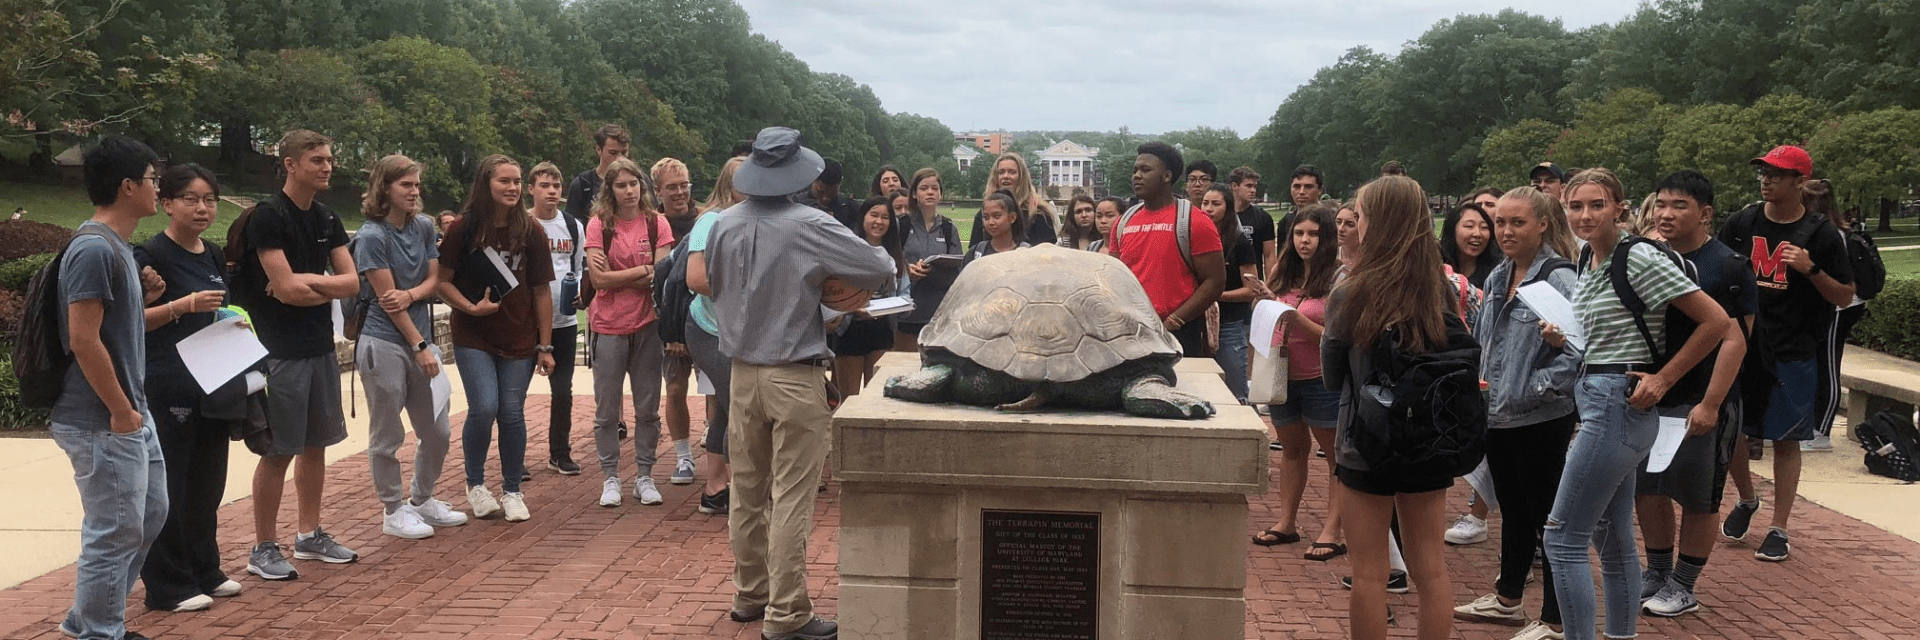 group of students face Testudo statue and professor in safari outfit